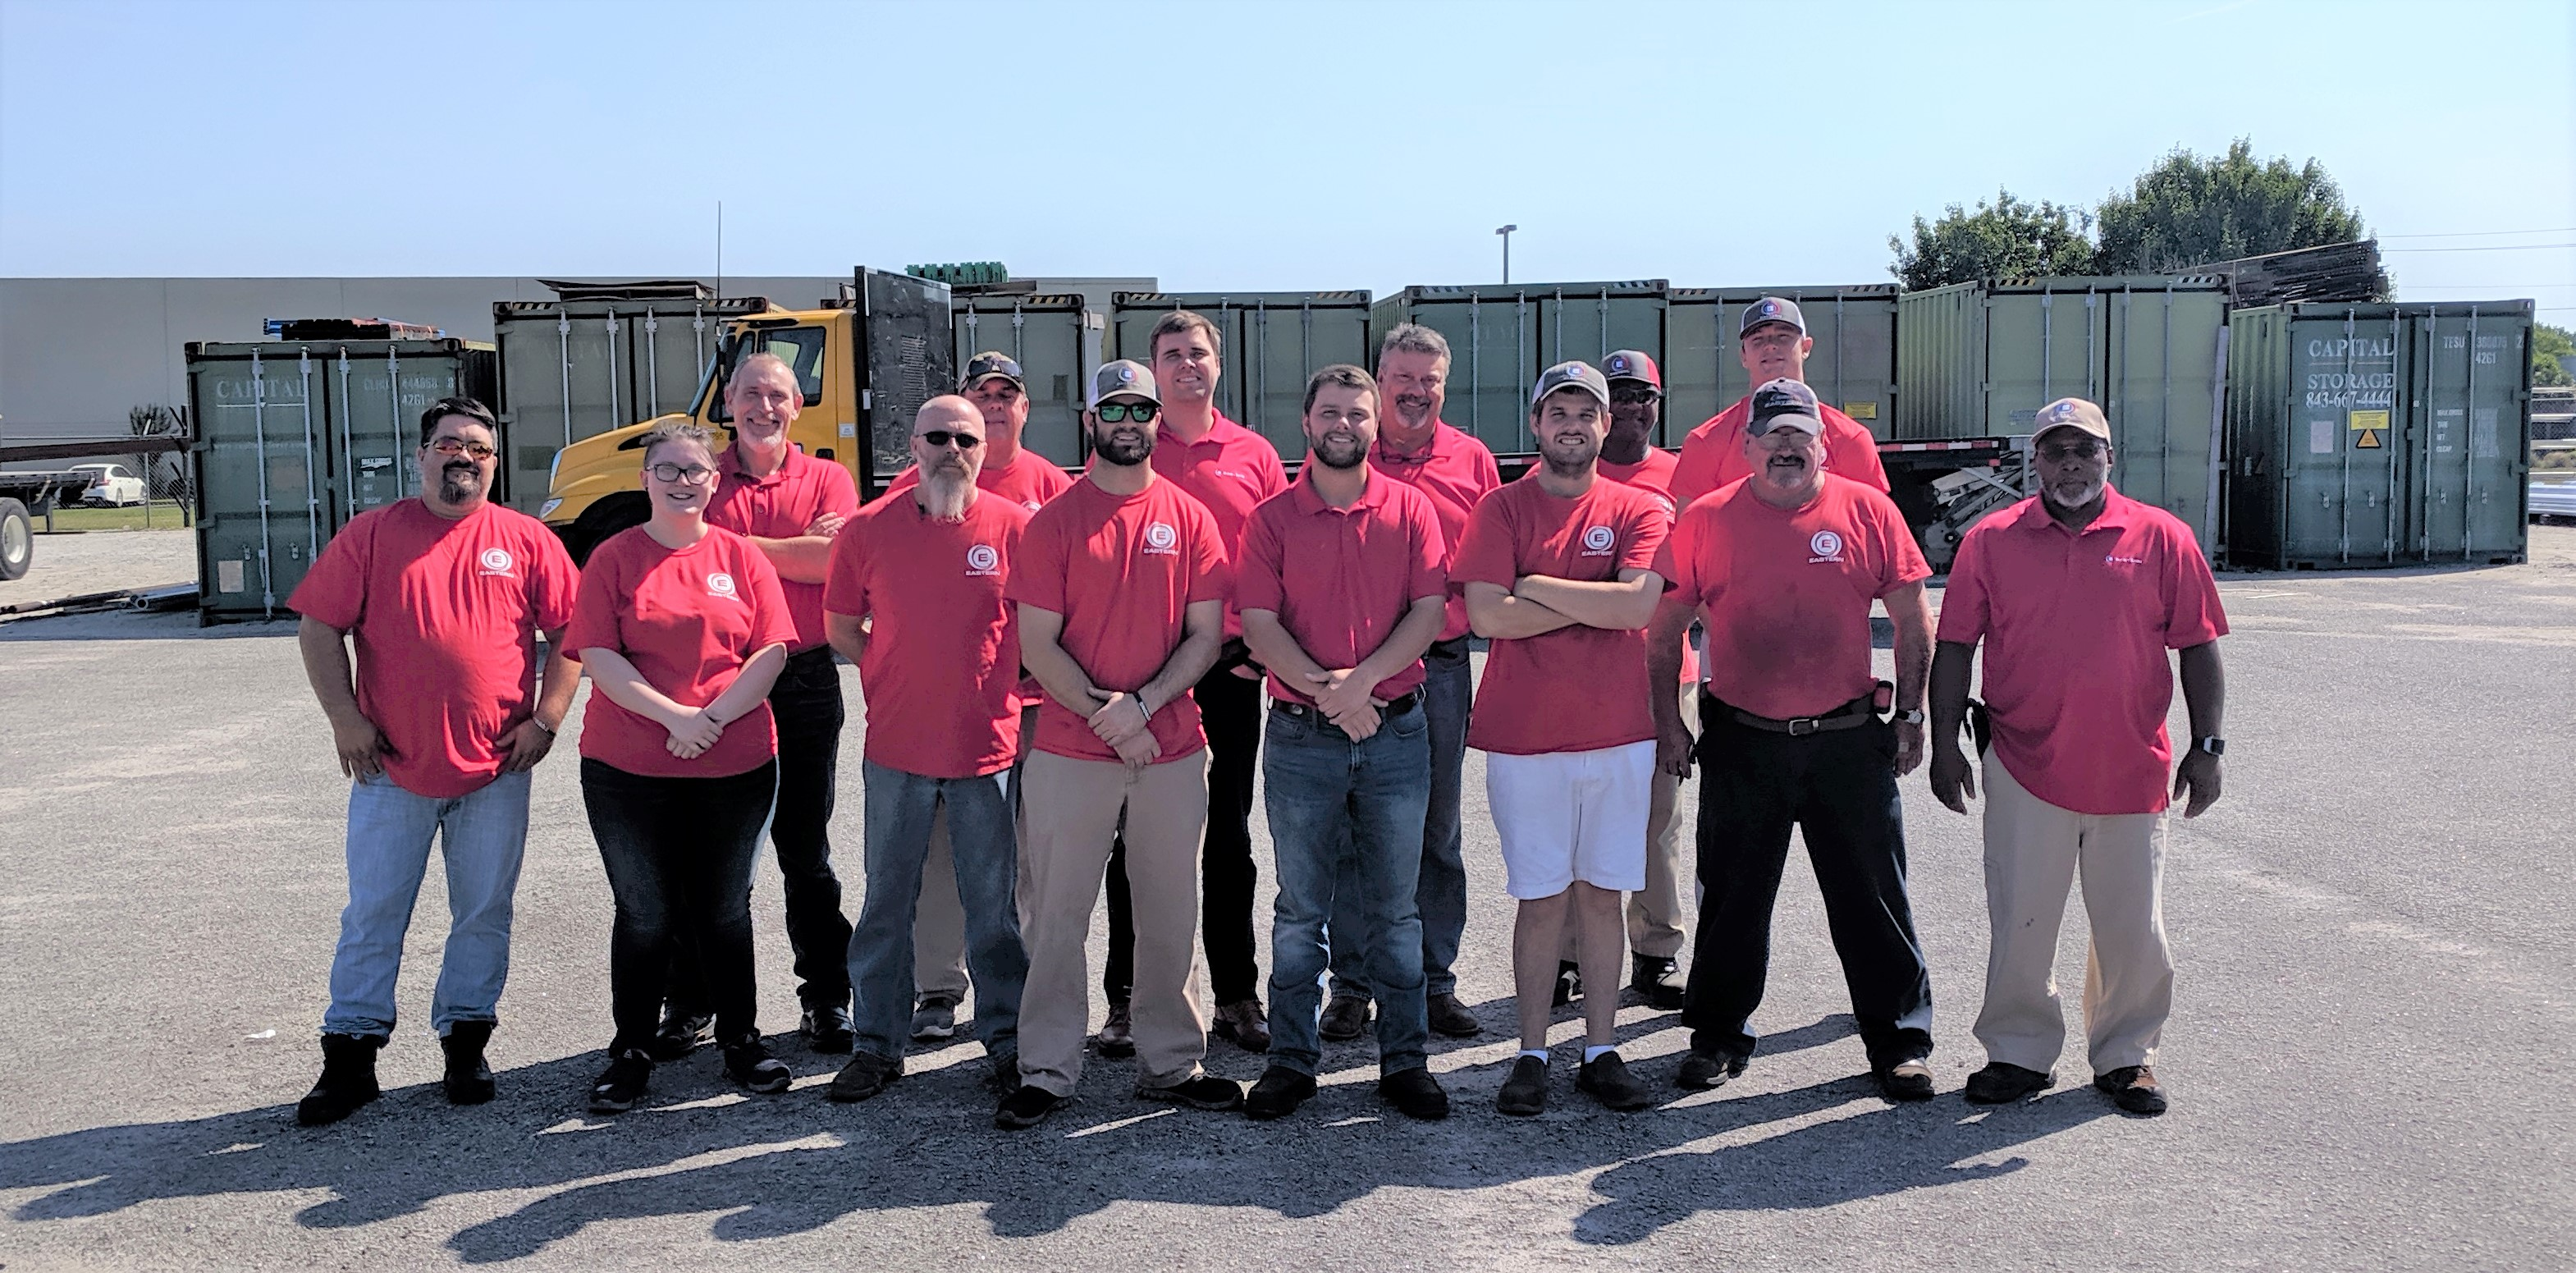 Florence Team Wearing Red Shirts for Veterans